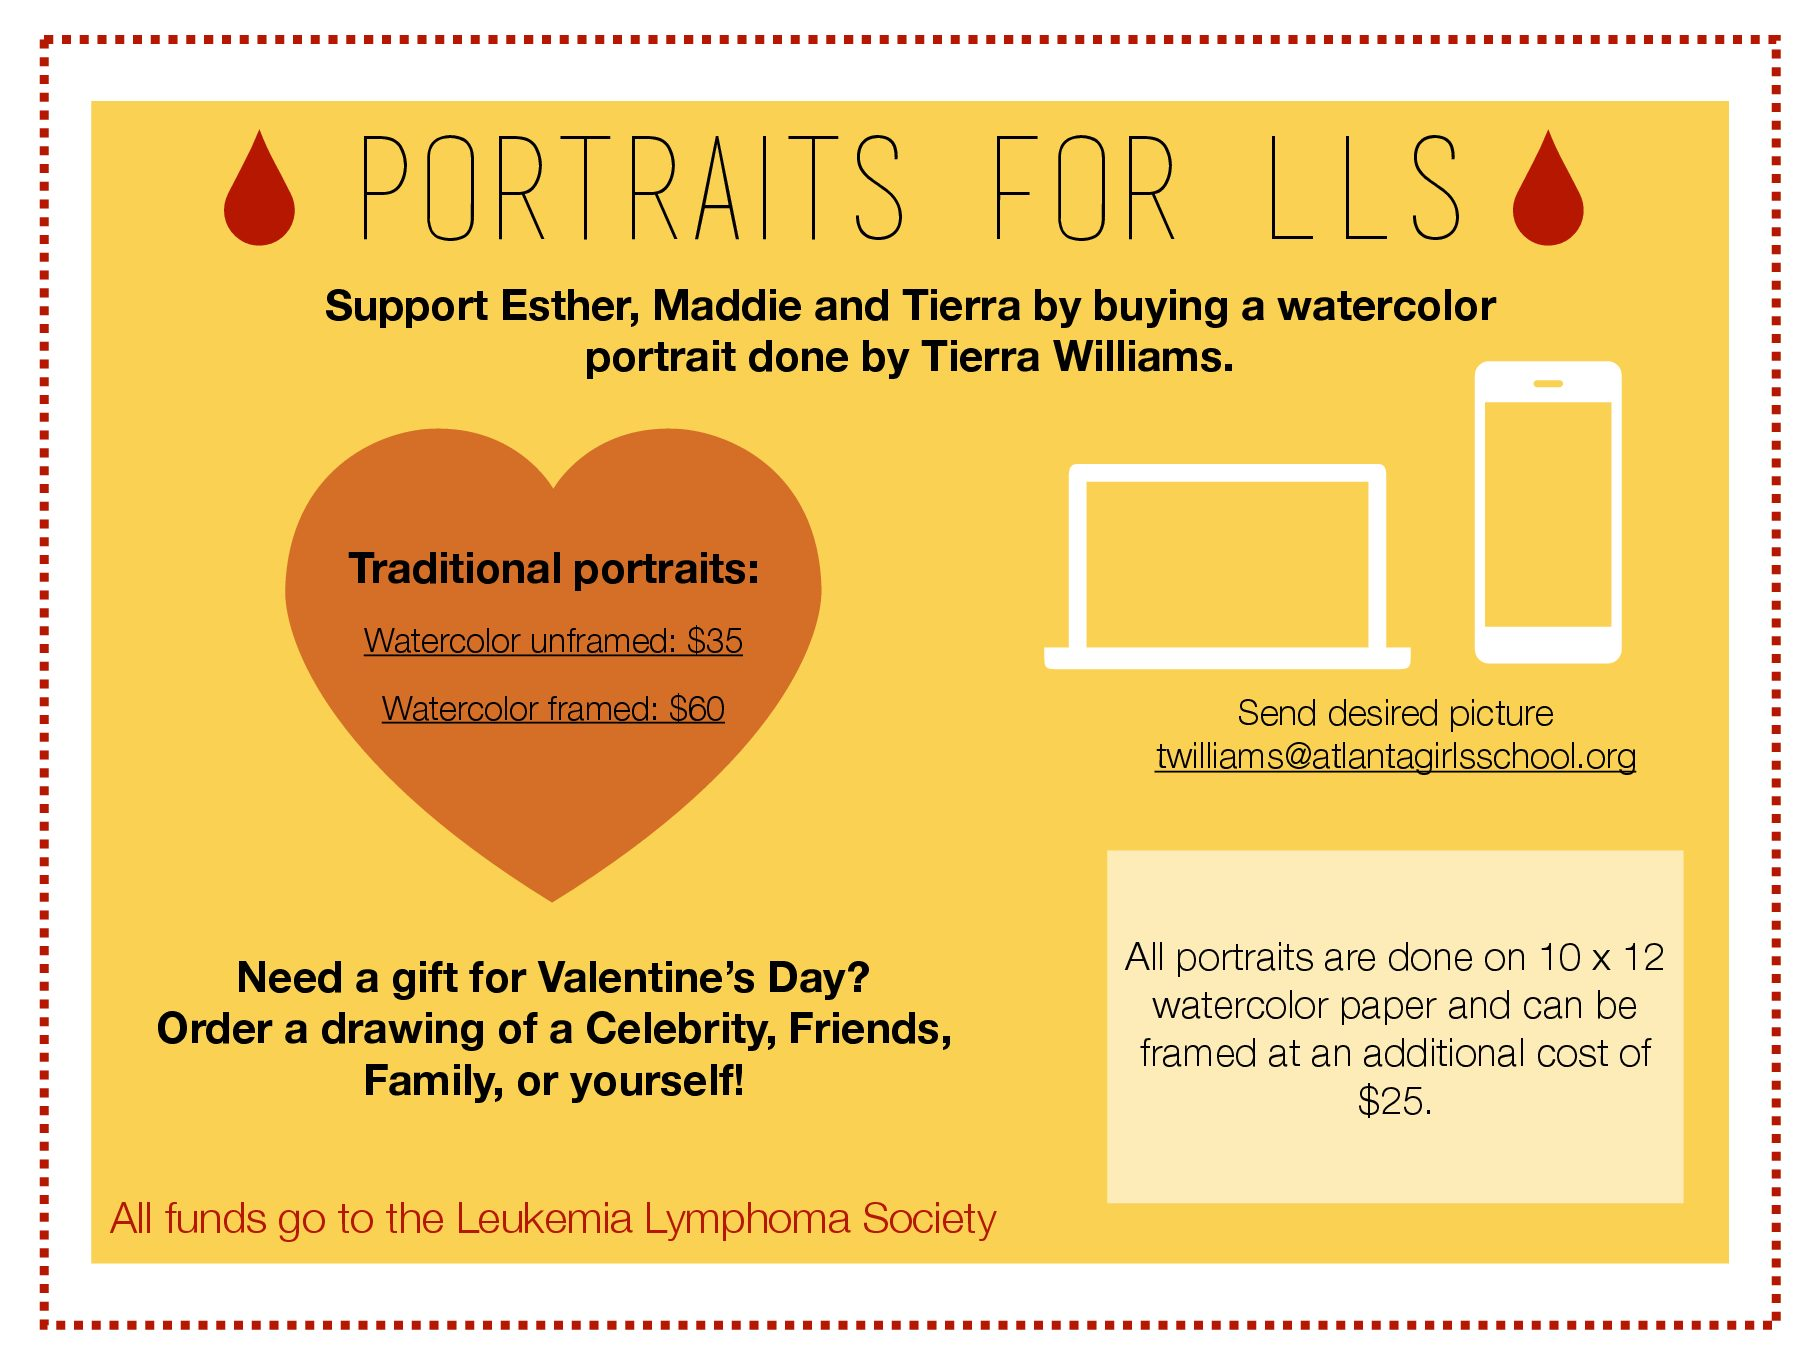 AGS Leaders Advocate for LLS Funds